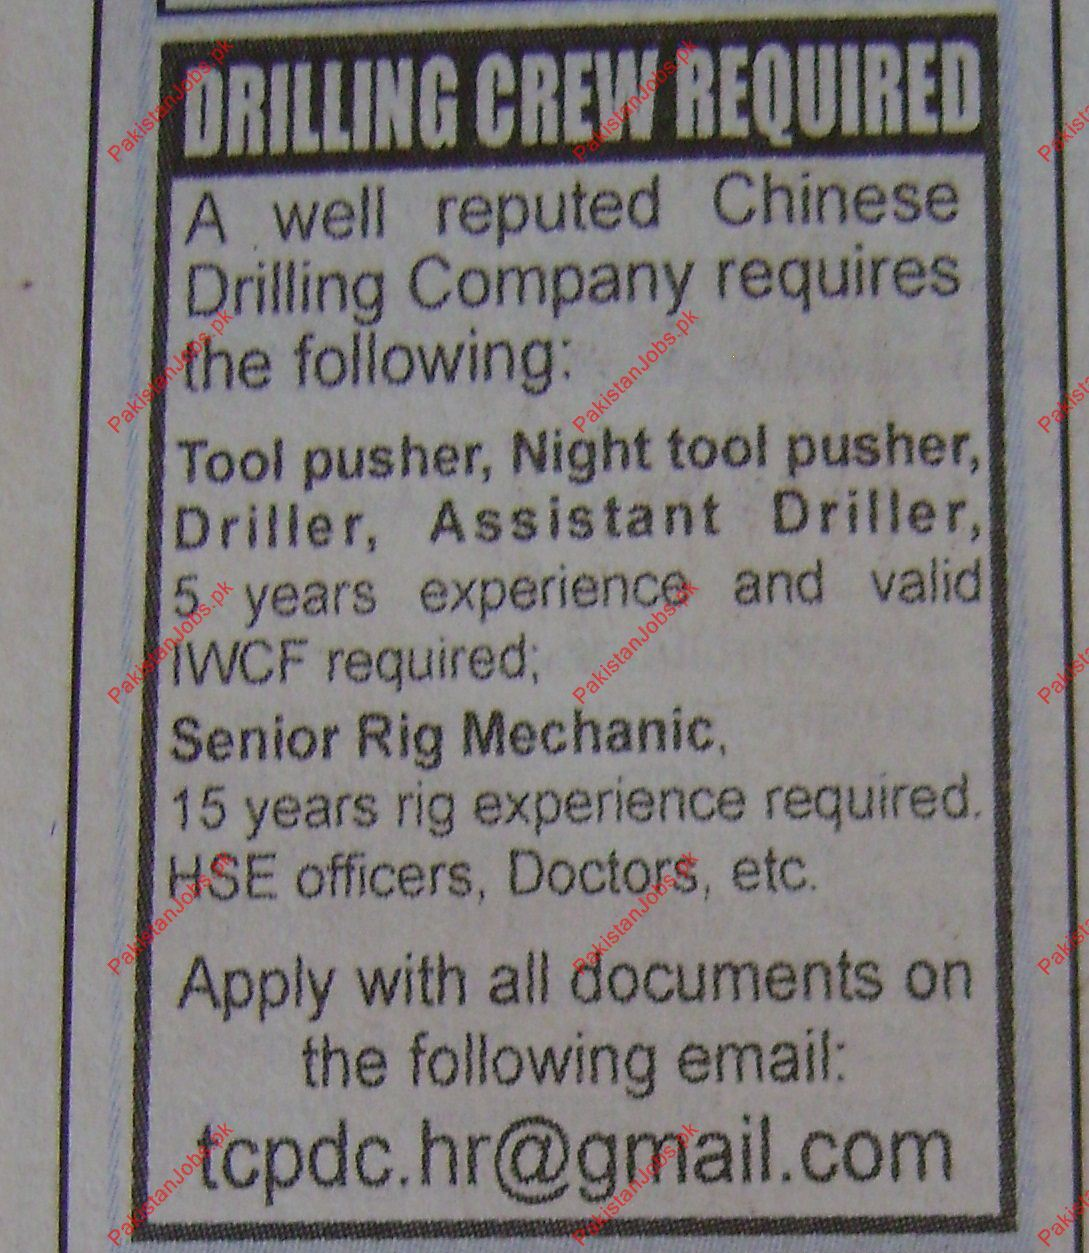 Drilling Crew Required 2019 Tianjin China Petroleum Drilling